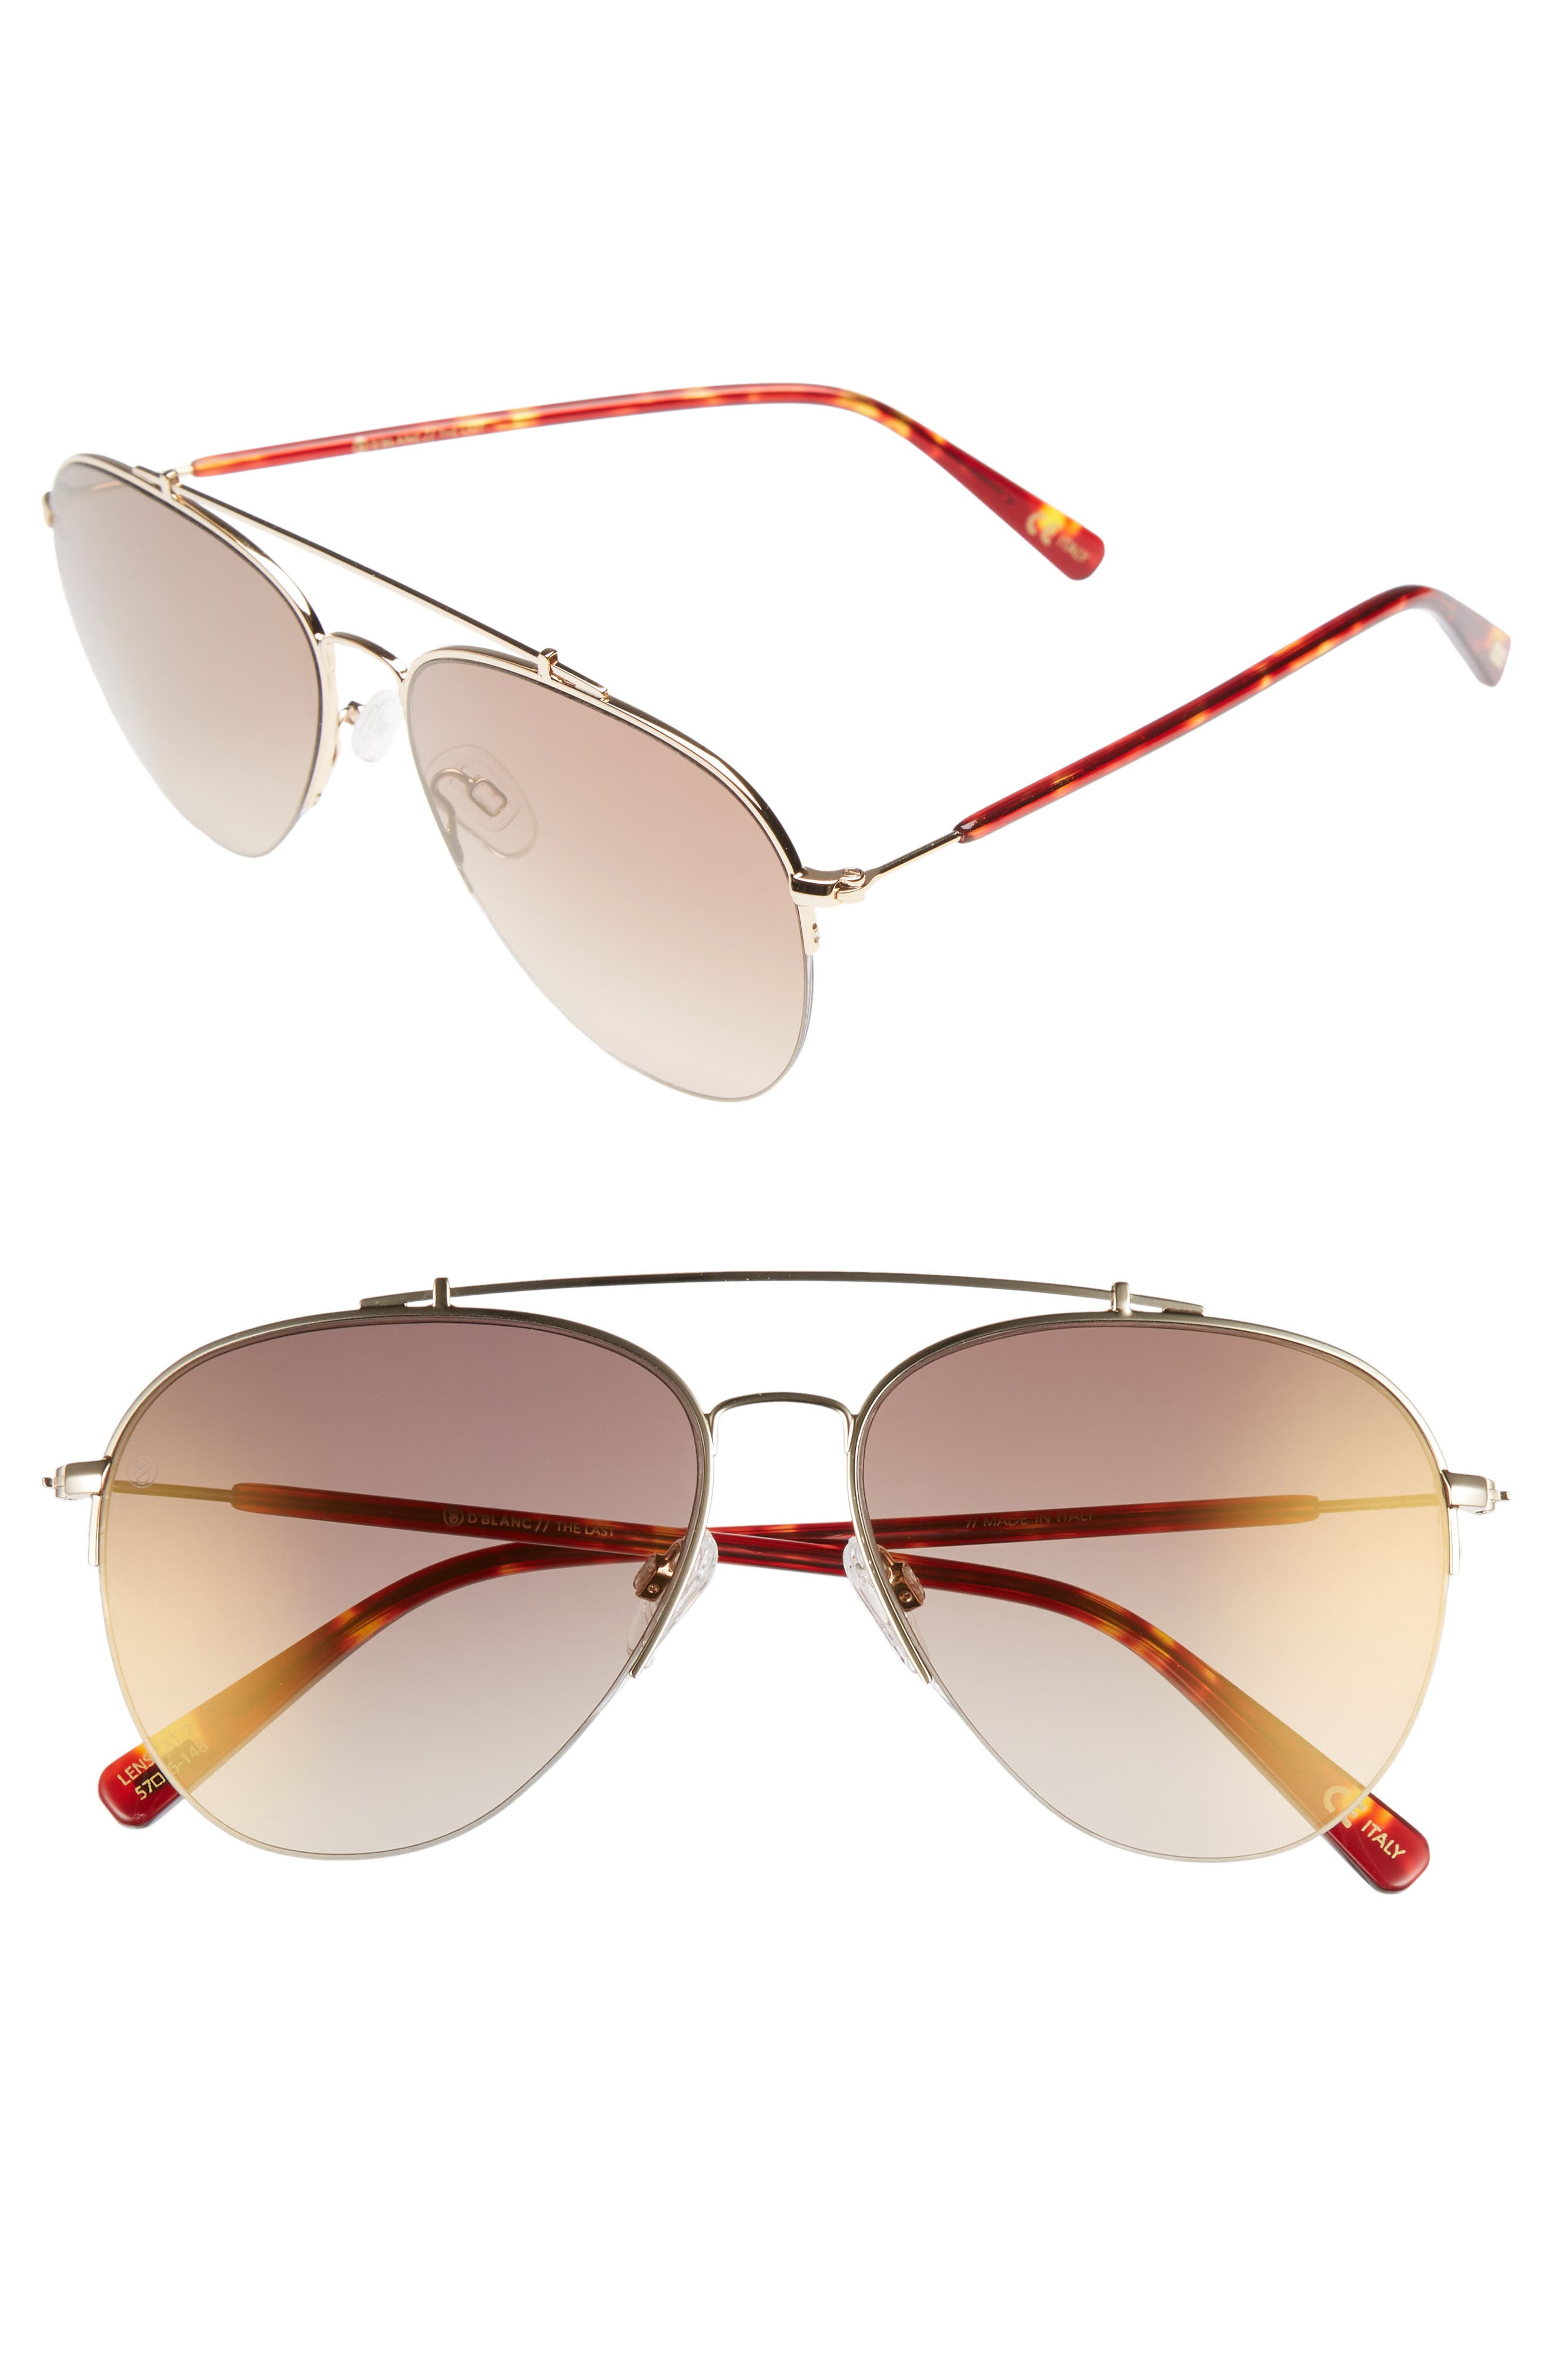 D'BLANC The Last 57mm Aviator Sunglasses,                             Main thumbnail 1, color,                             Toffee/ Brown